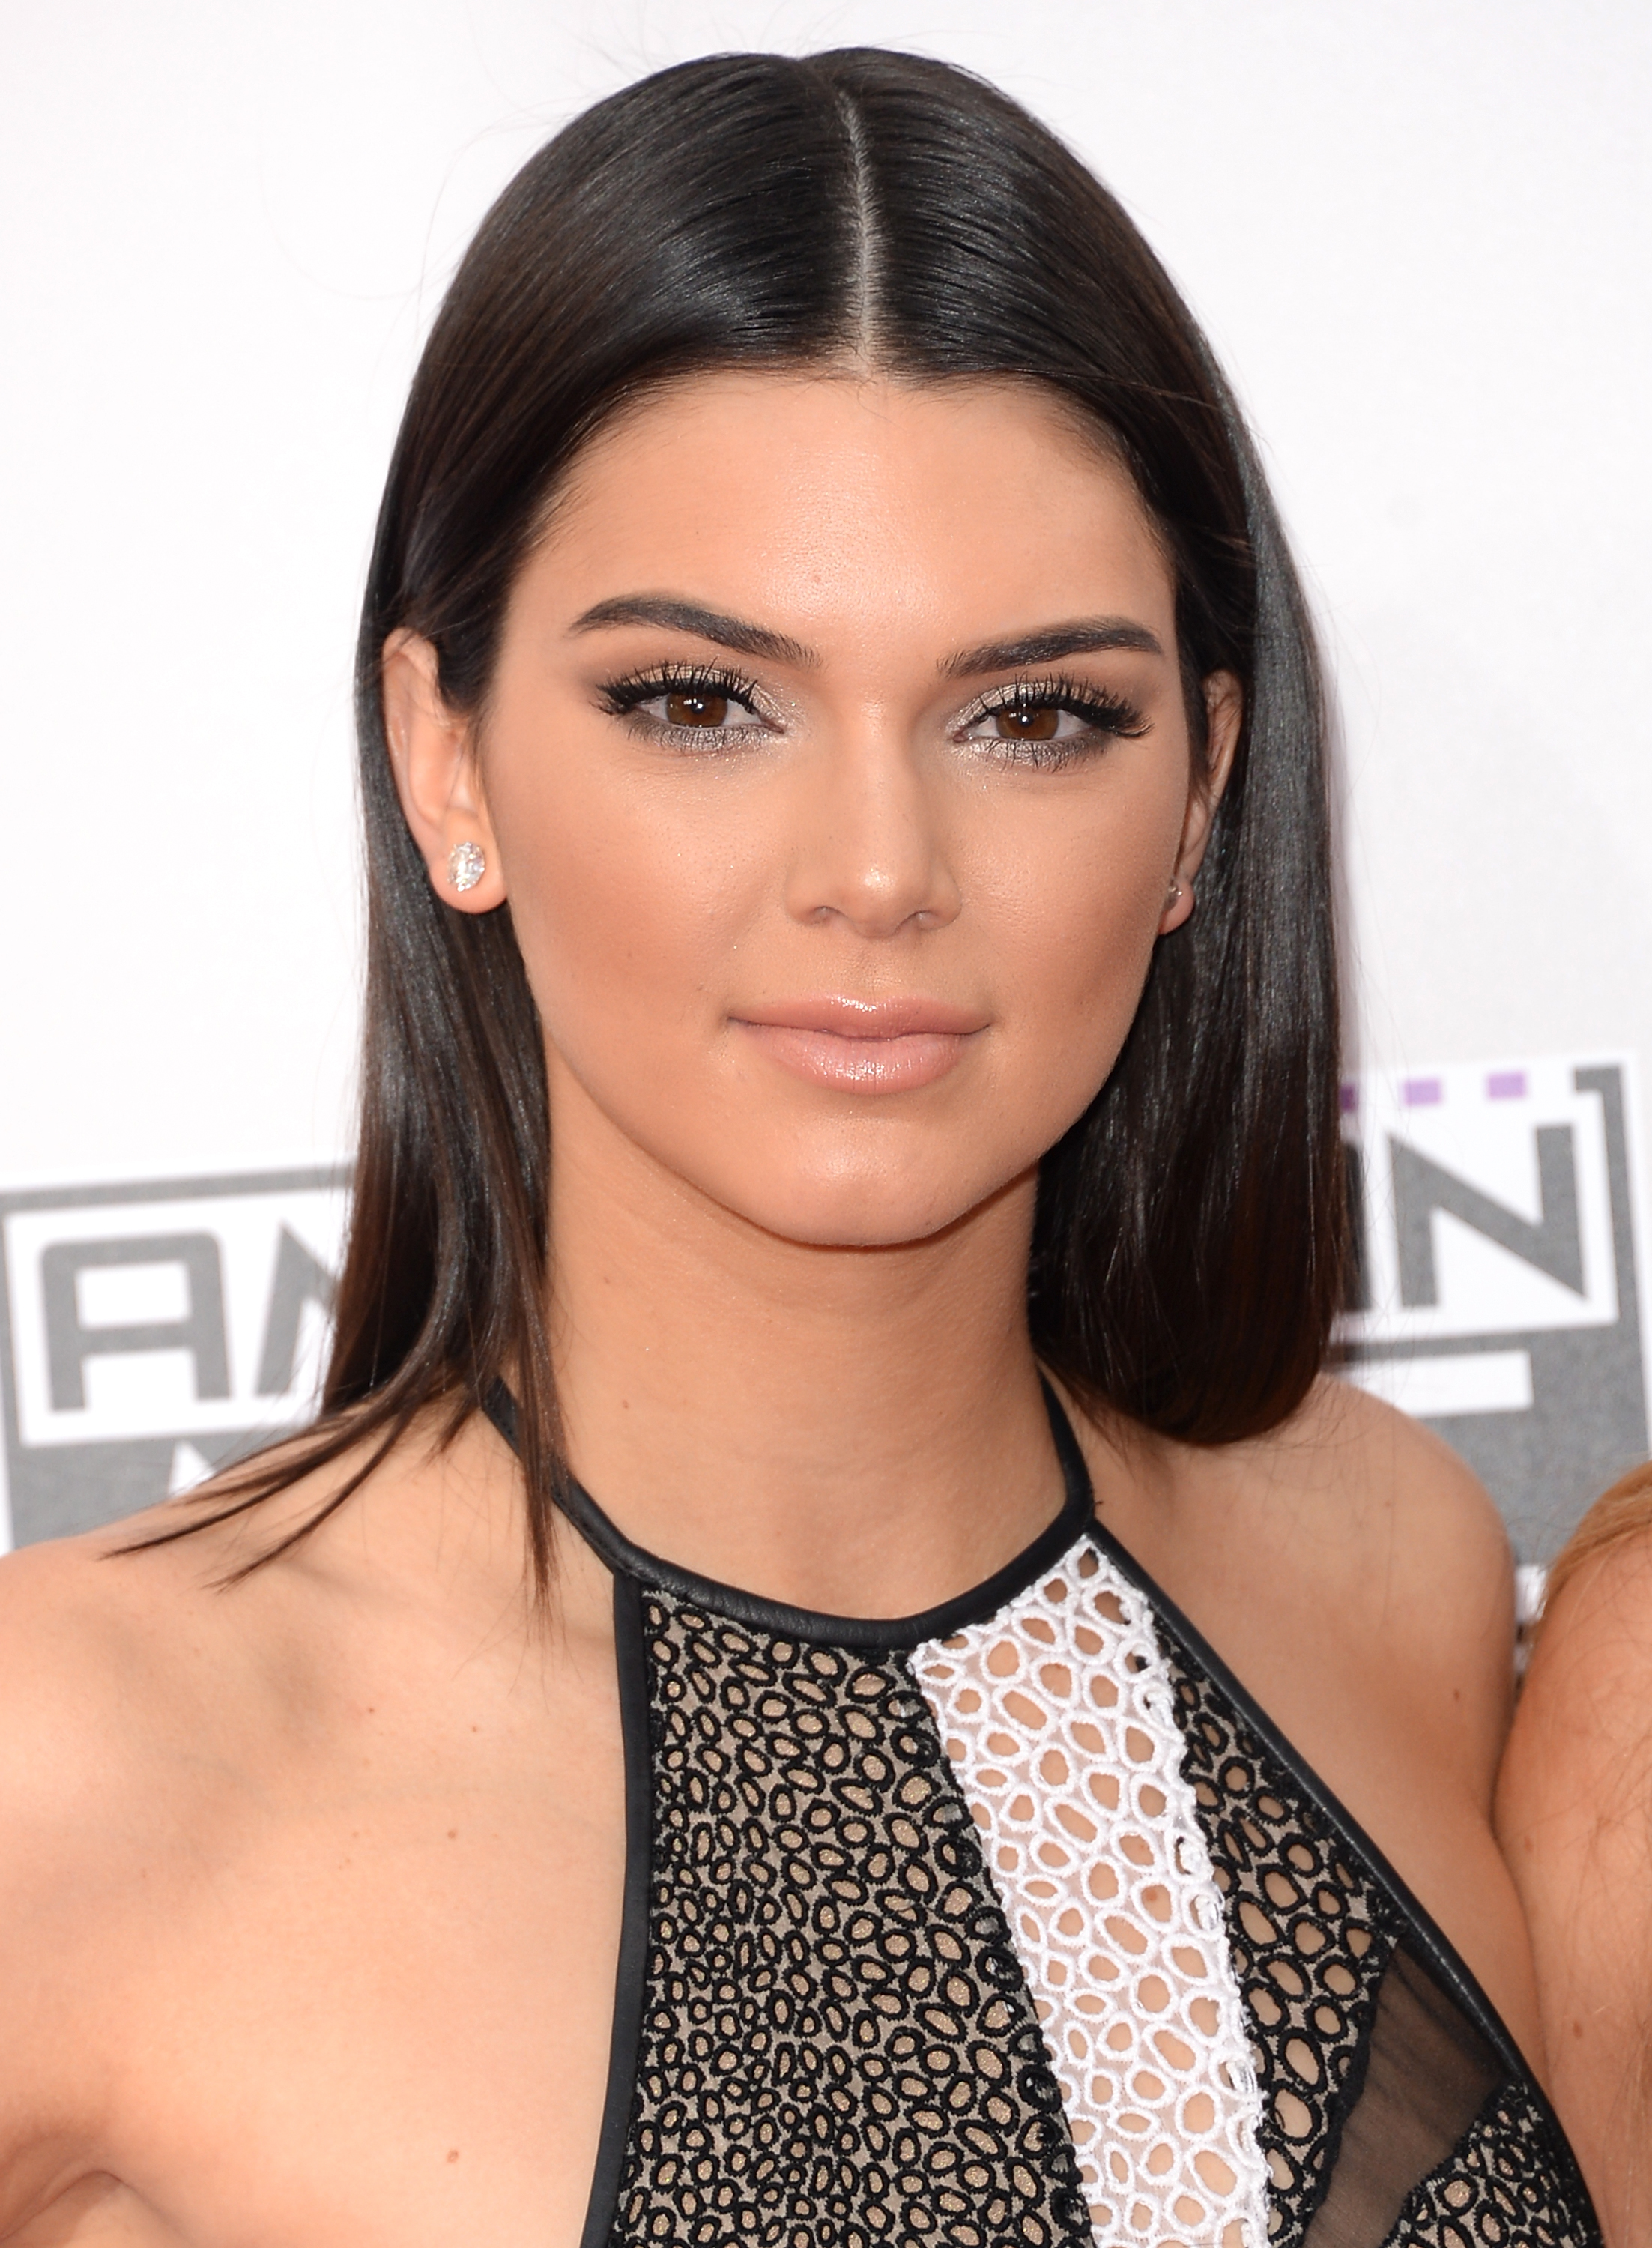 LOS ANGELES, CA - NOVEMBER 23: Kendall Jenner attends the 2014 American Music Awards at Nokia Theatre L.A. Live on November 23, 2014 in Los Angeles, California. (Photo by Jason Merritt/Getty Images)